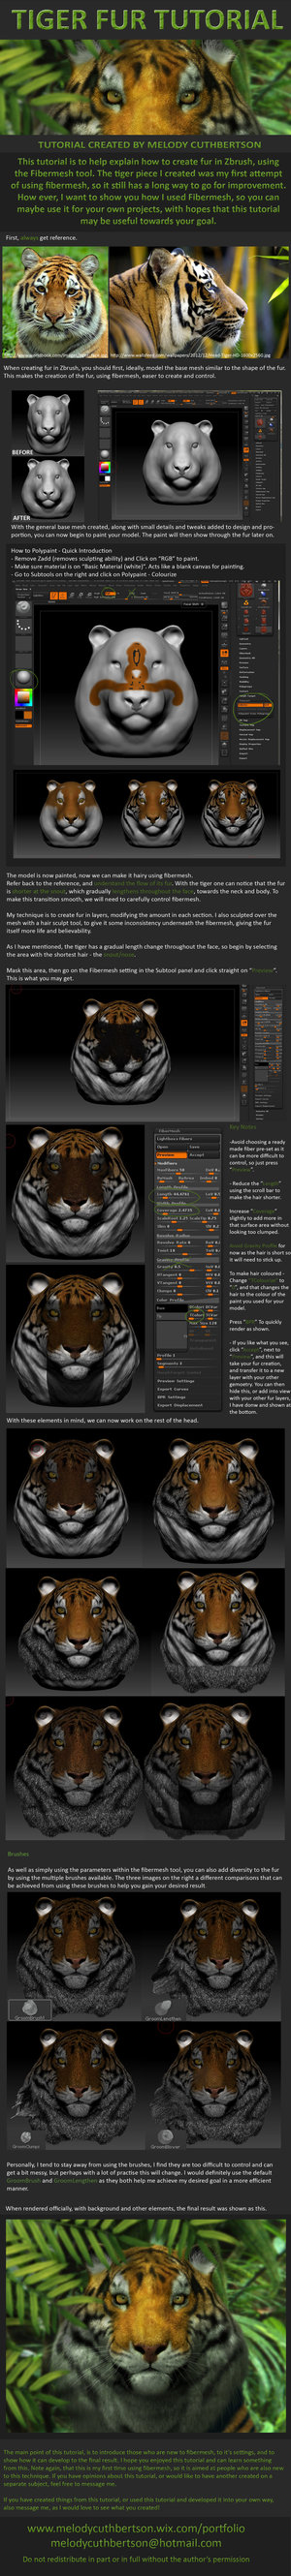 Zbrush Fur Tutorial by RedVanda on DeviantArt